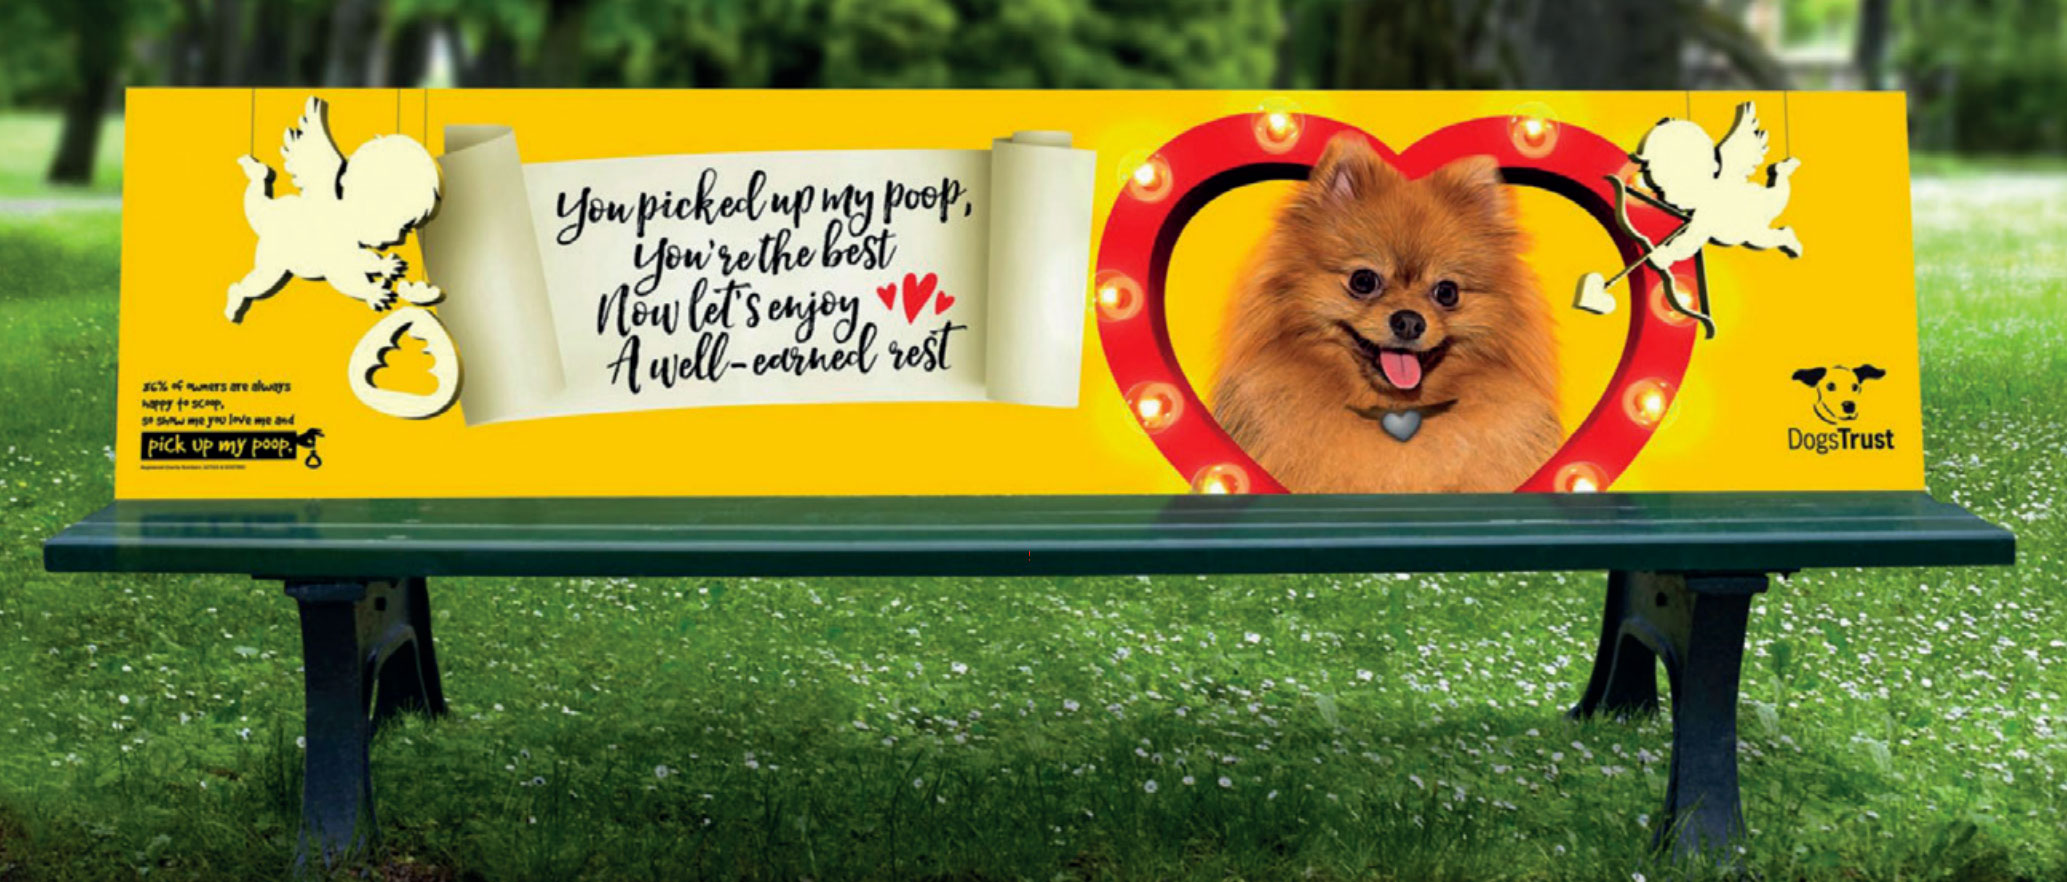 Dogs Trust campaign